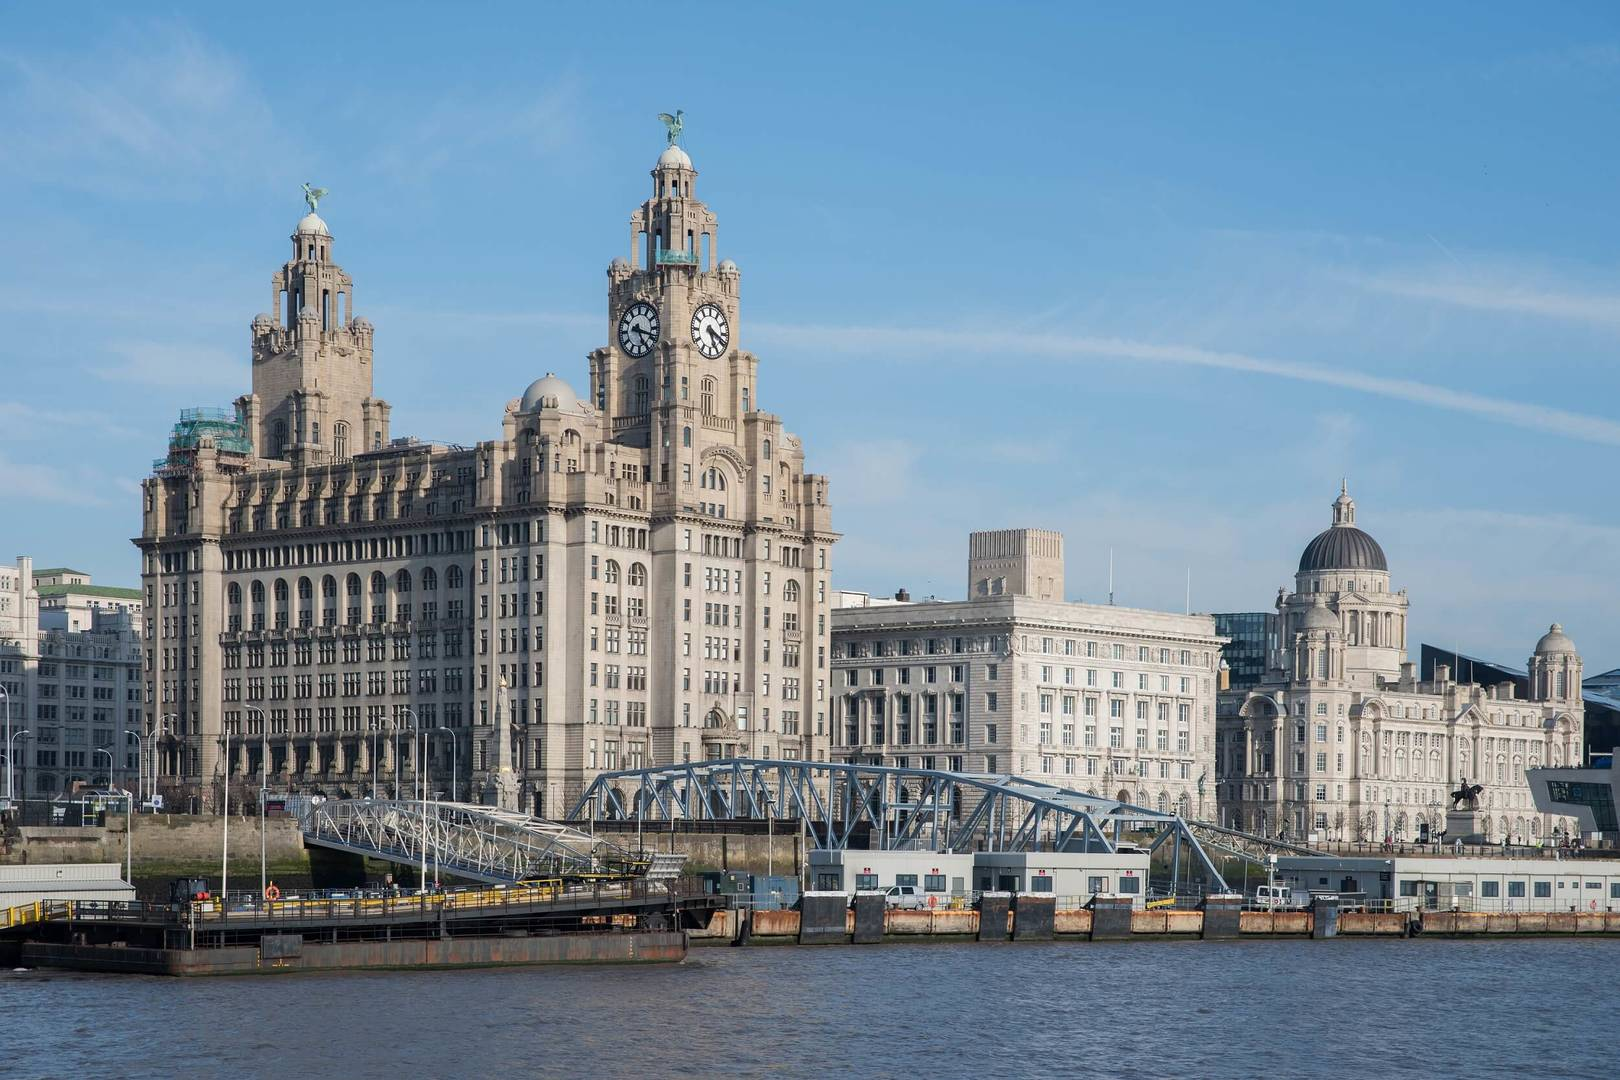 buildings in liverpool against a blue sky